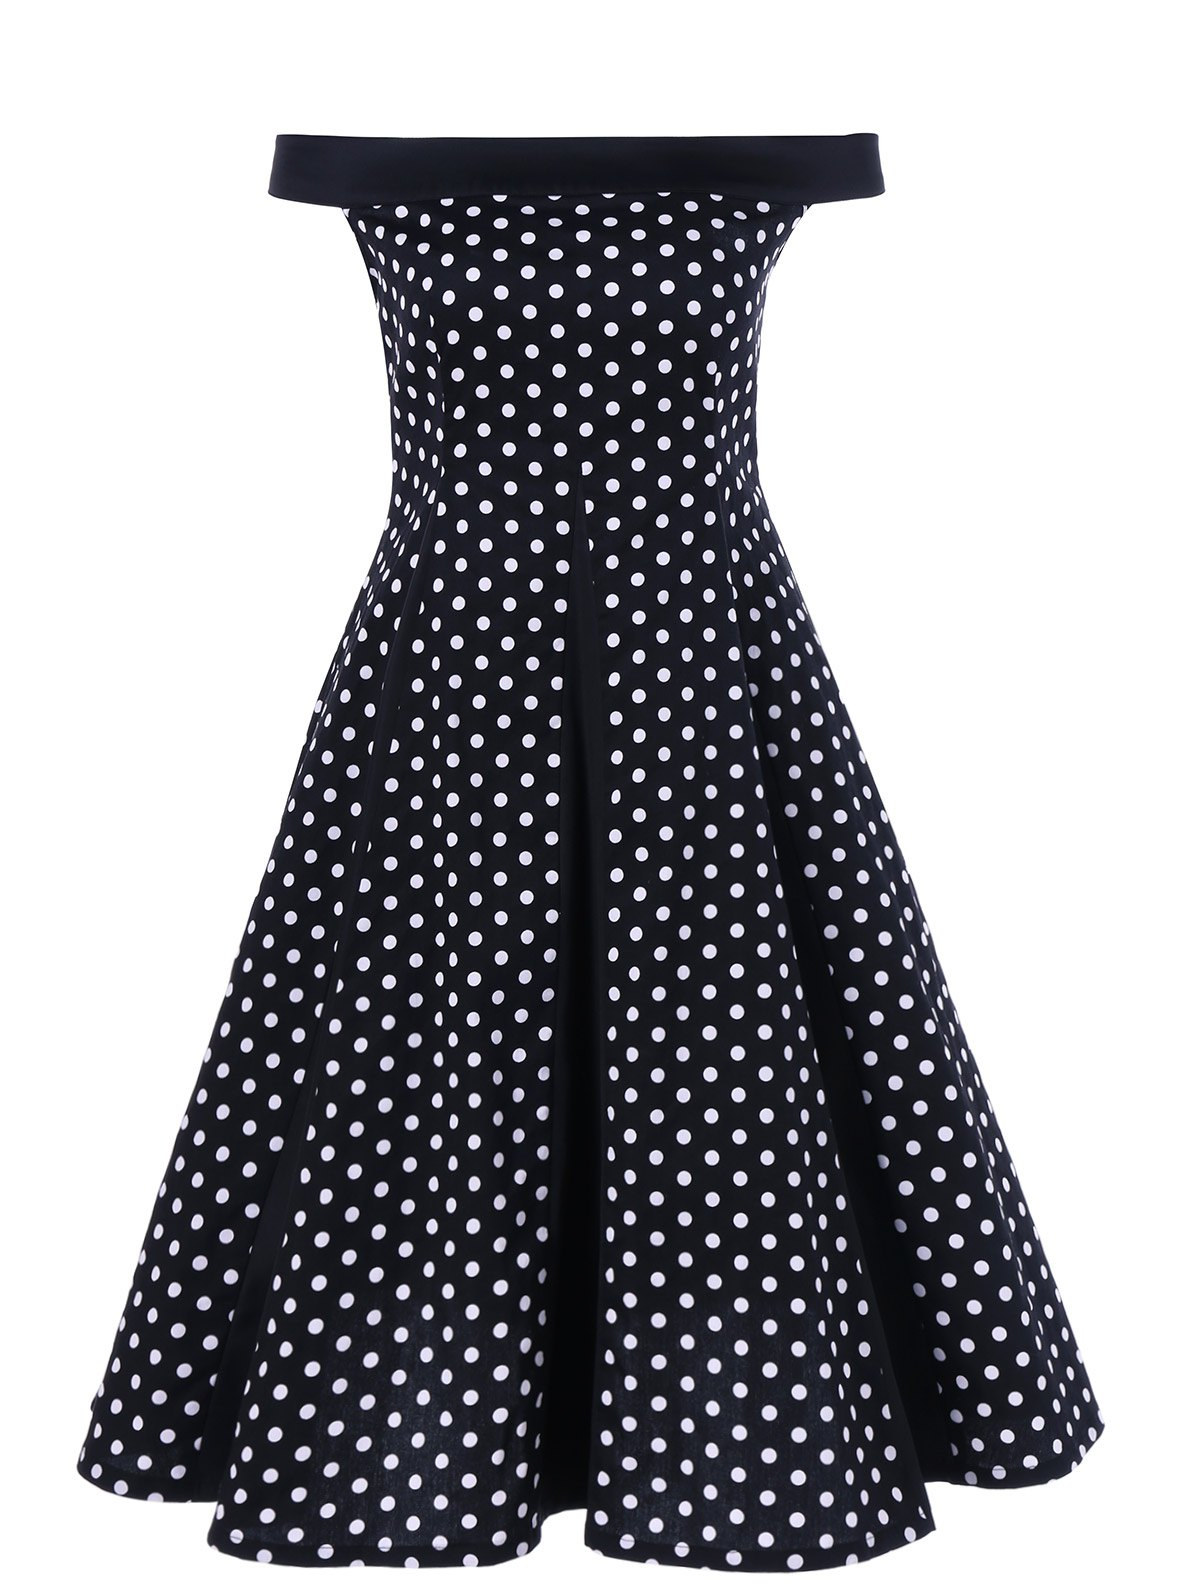 Off The Shoulder Polka Dot Vintage Dress off shoulder polka dot top with splited dress